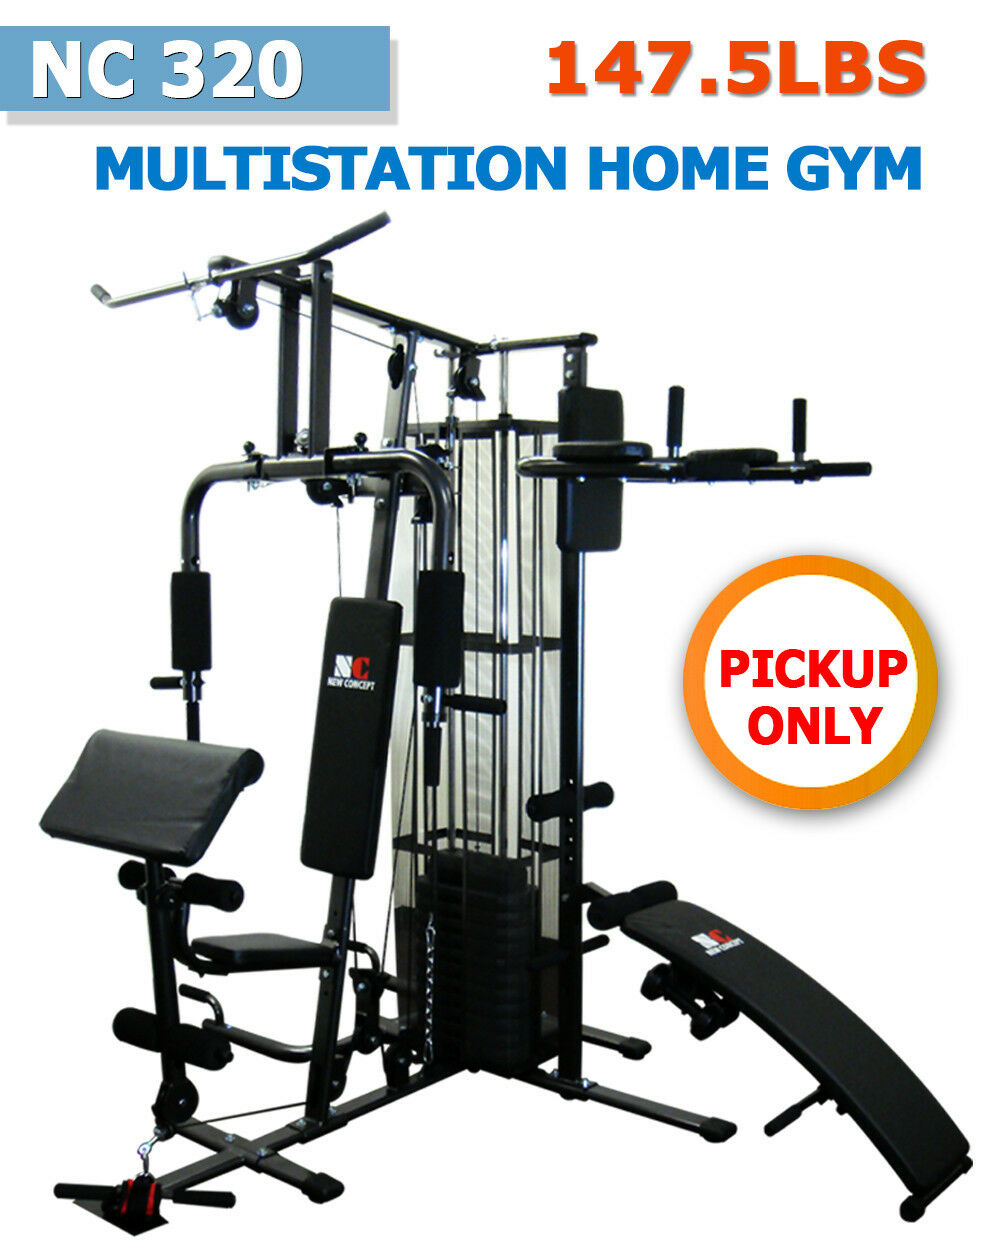 NEW MULTI STATION HOME GYM FITNESS EQUIPMENT Bench With